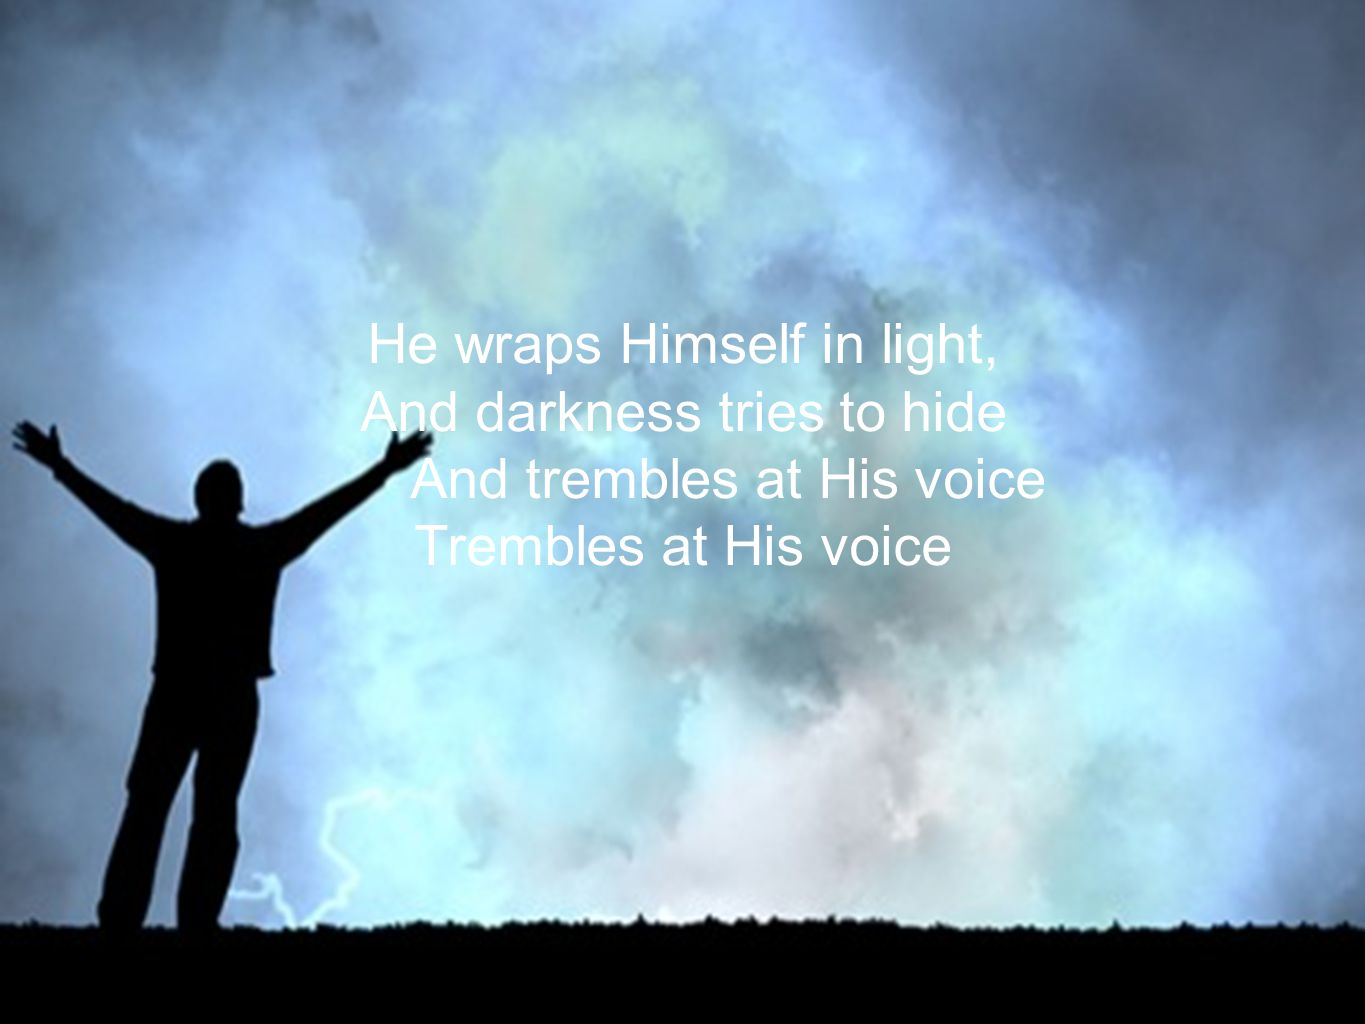 He wraps Himself in light, And darkness tries to hide And trembles at His voice Trembles at His voice